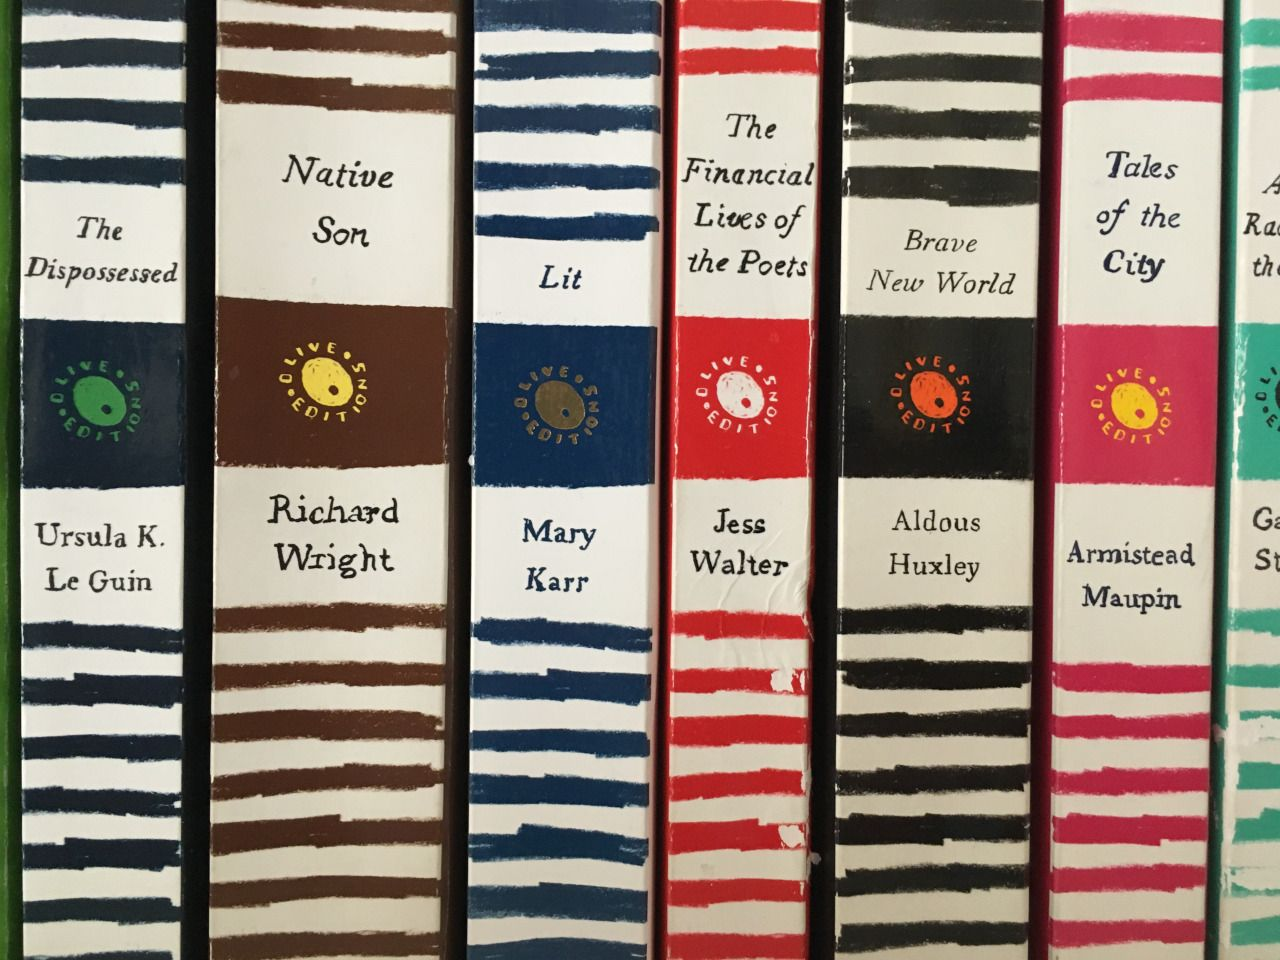 The beauty of Harper Perennial Olive Edition spines